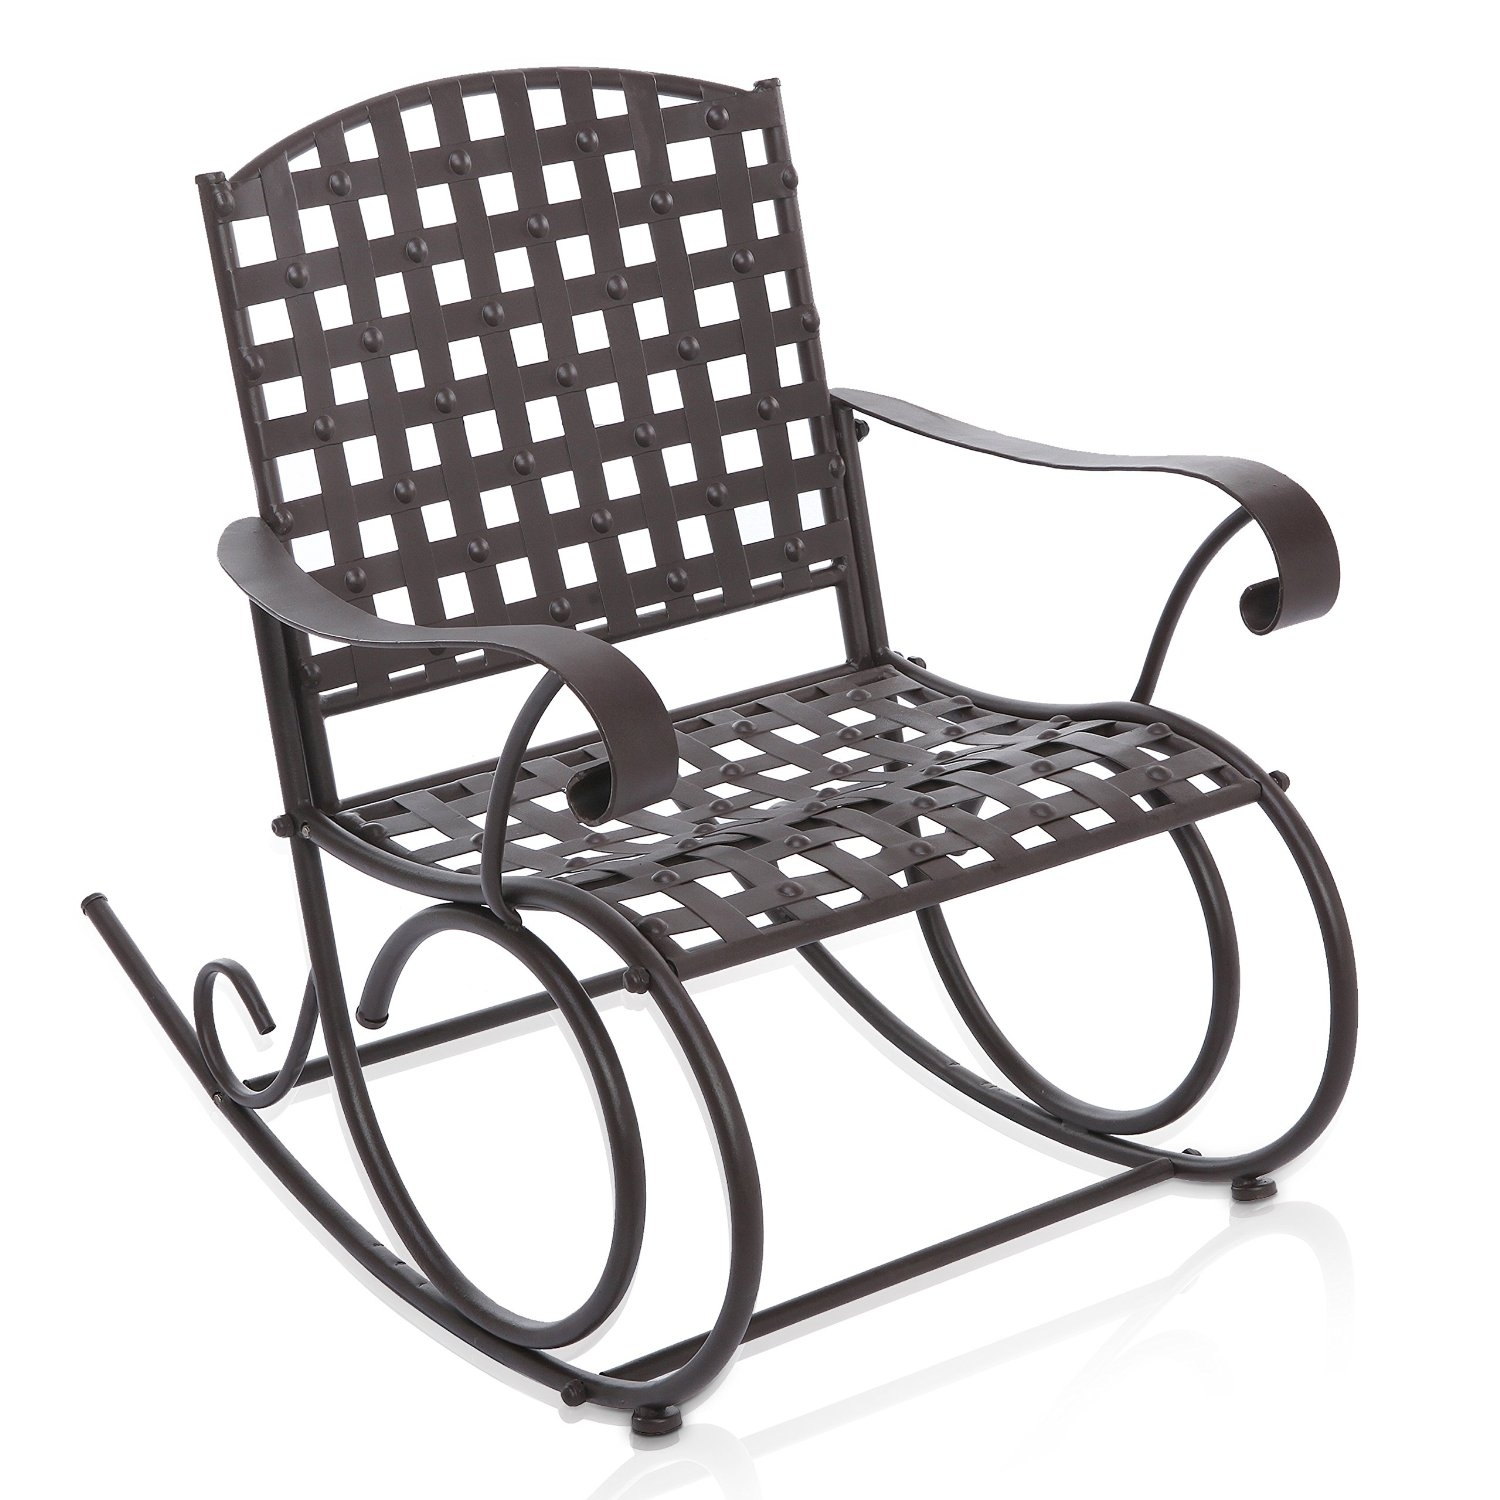 Buy Decorative Dark Brown Woven Metal Rocking Chair / Outdoor Patio With Regard To Outdoor Patio Metal Rocking Chairs (View 14 of 15)